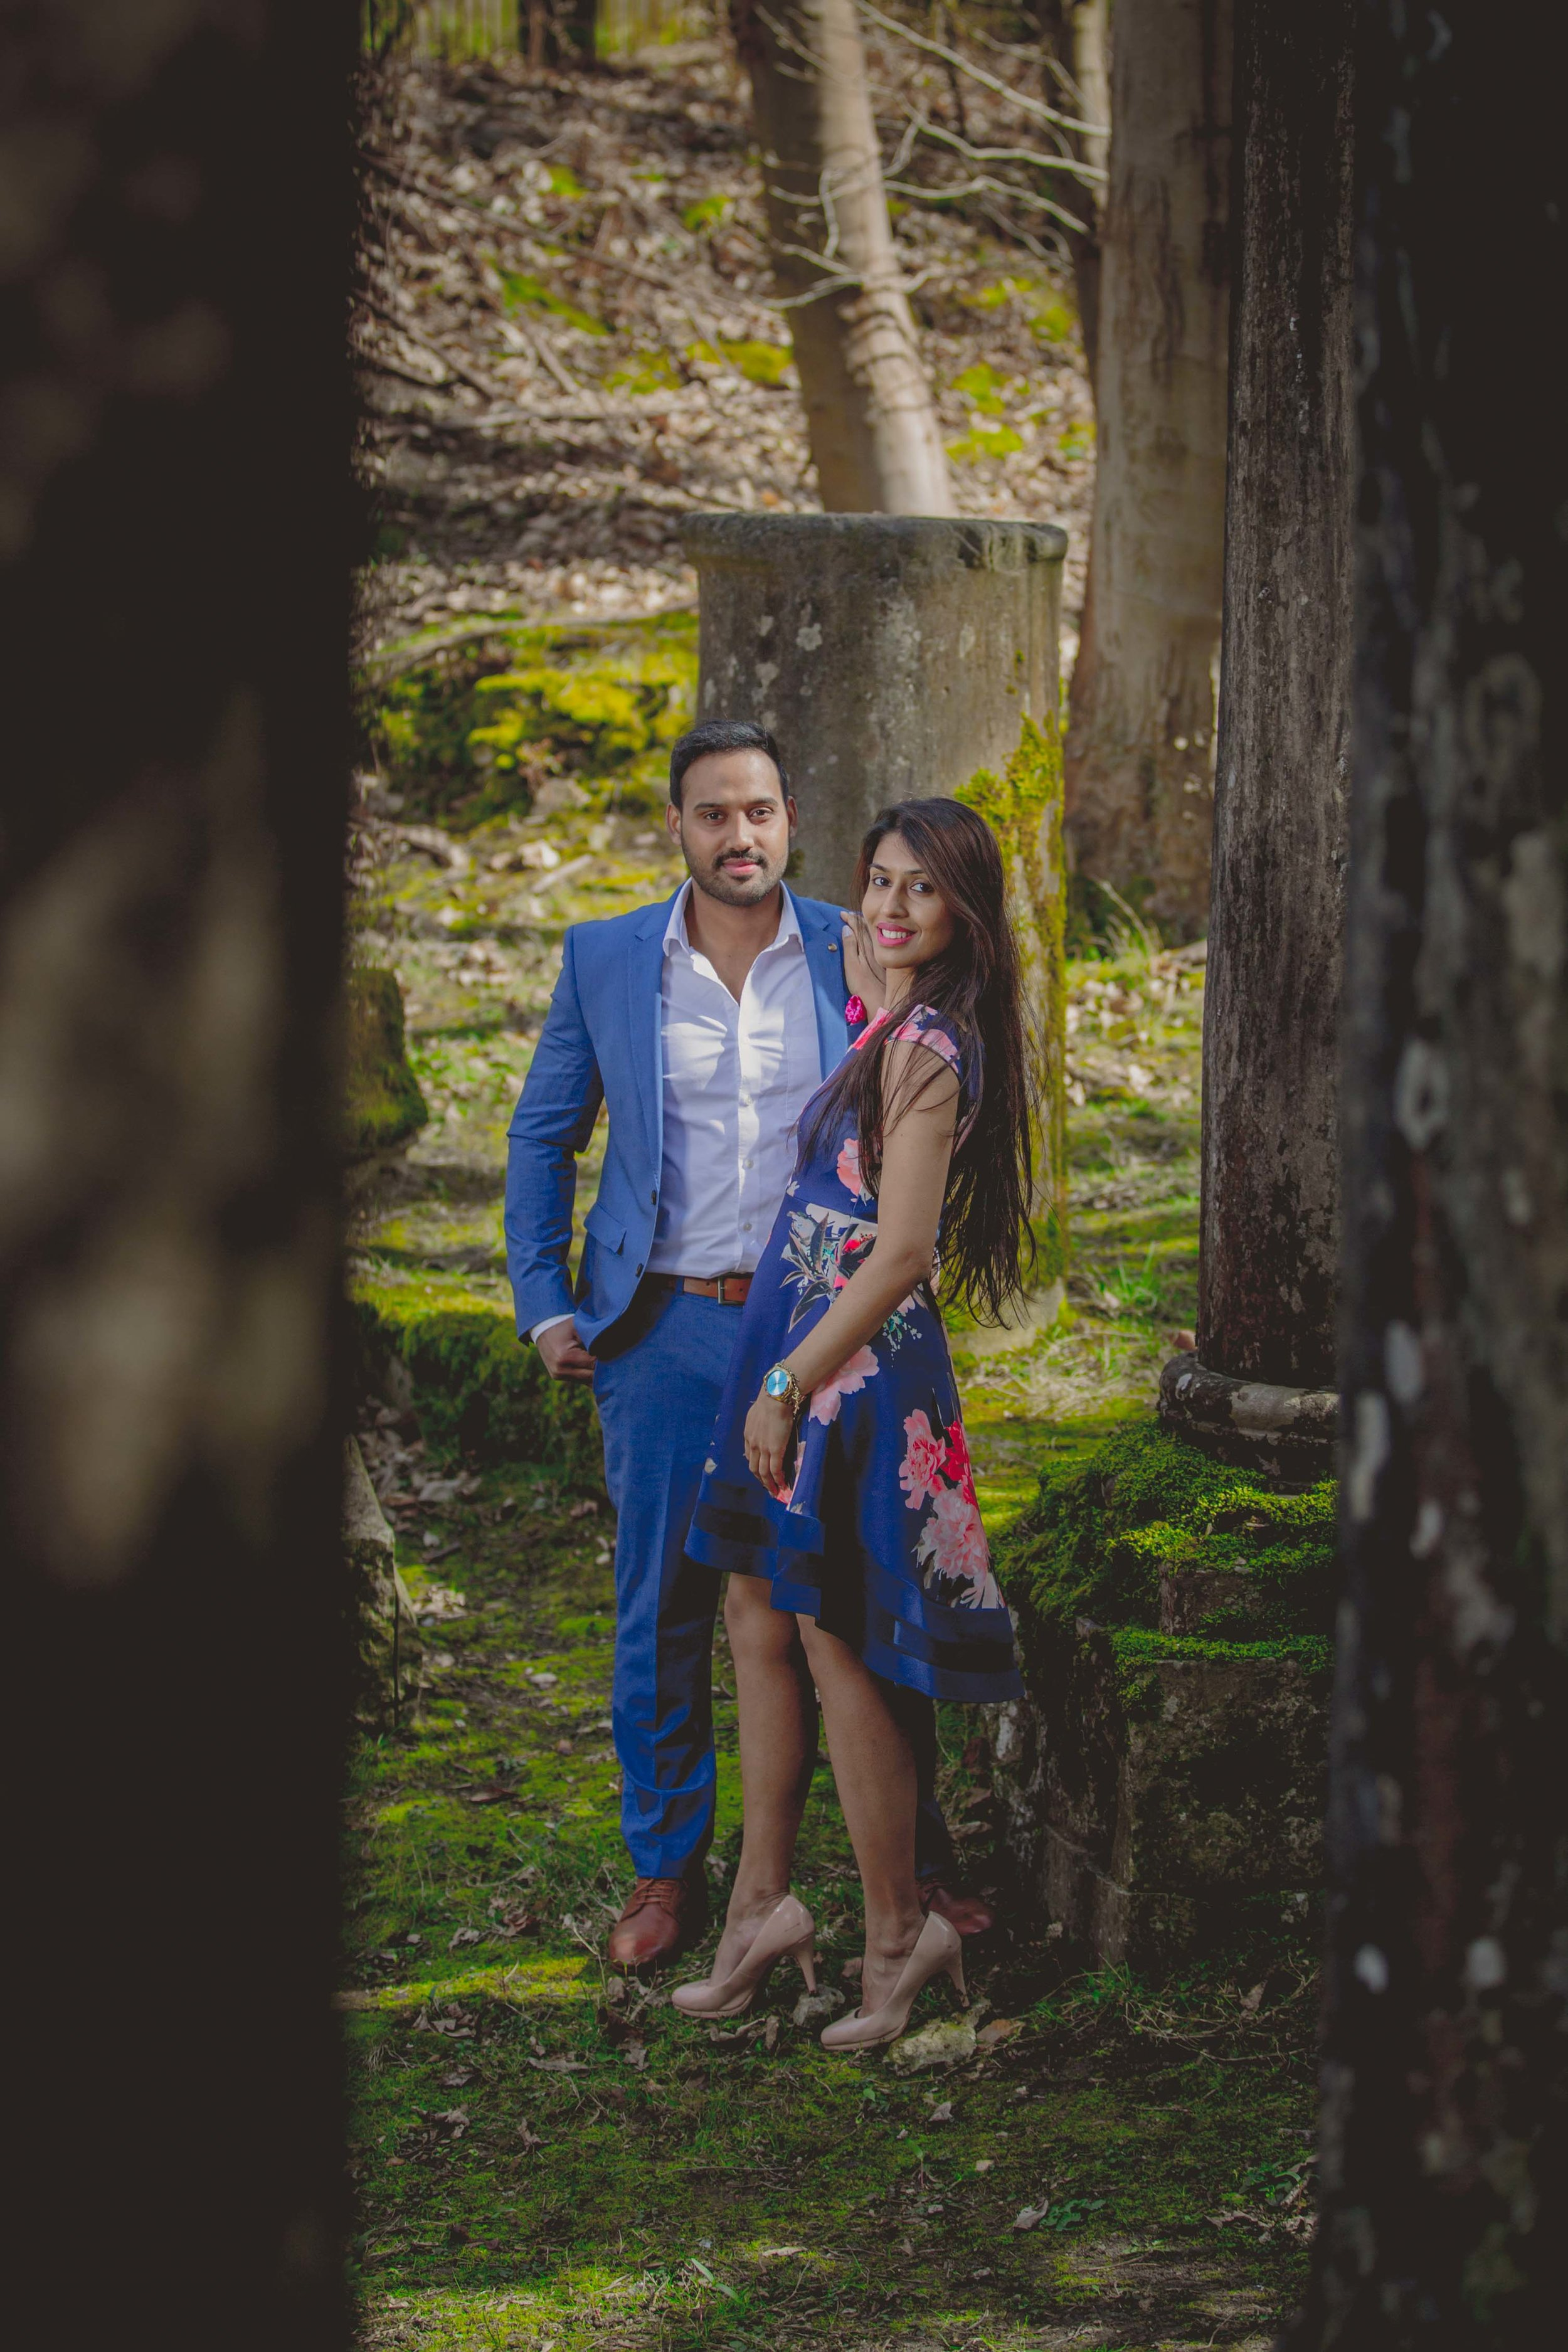 Virginia-waters-windsor-pre-wedding-engagement-shoot-female-asian-wedding-photographer-natalia-smith-photography-leptis-magna-ruins-2.jpg